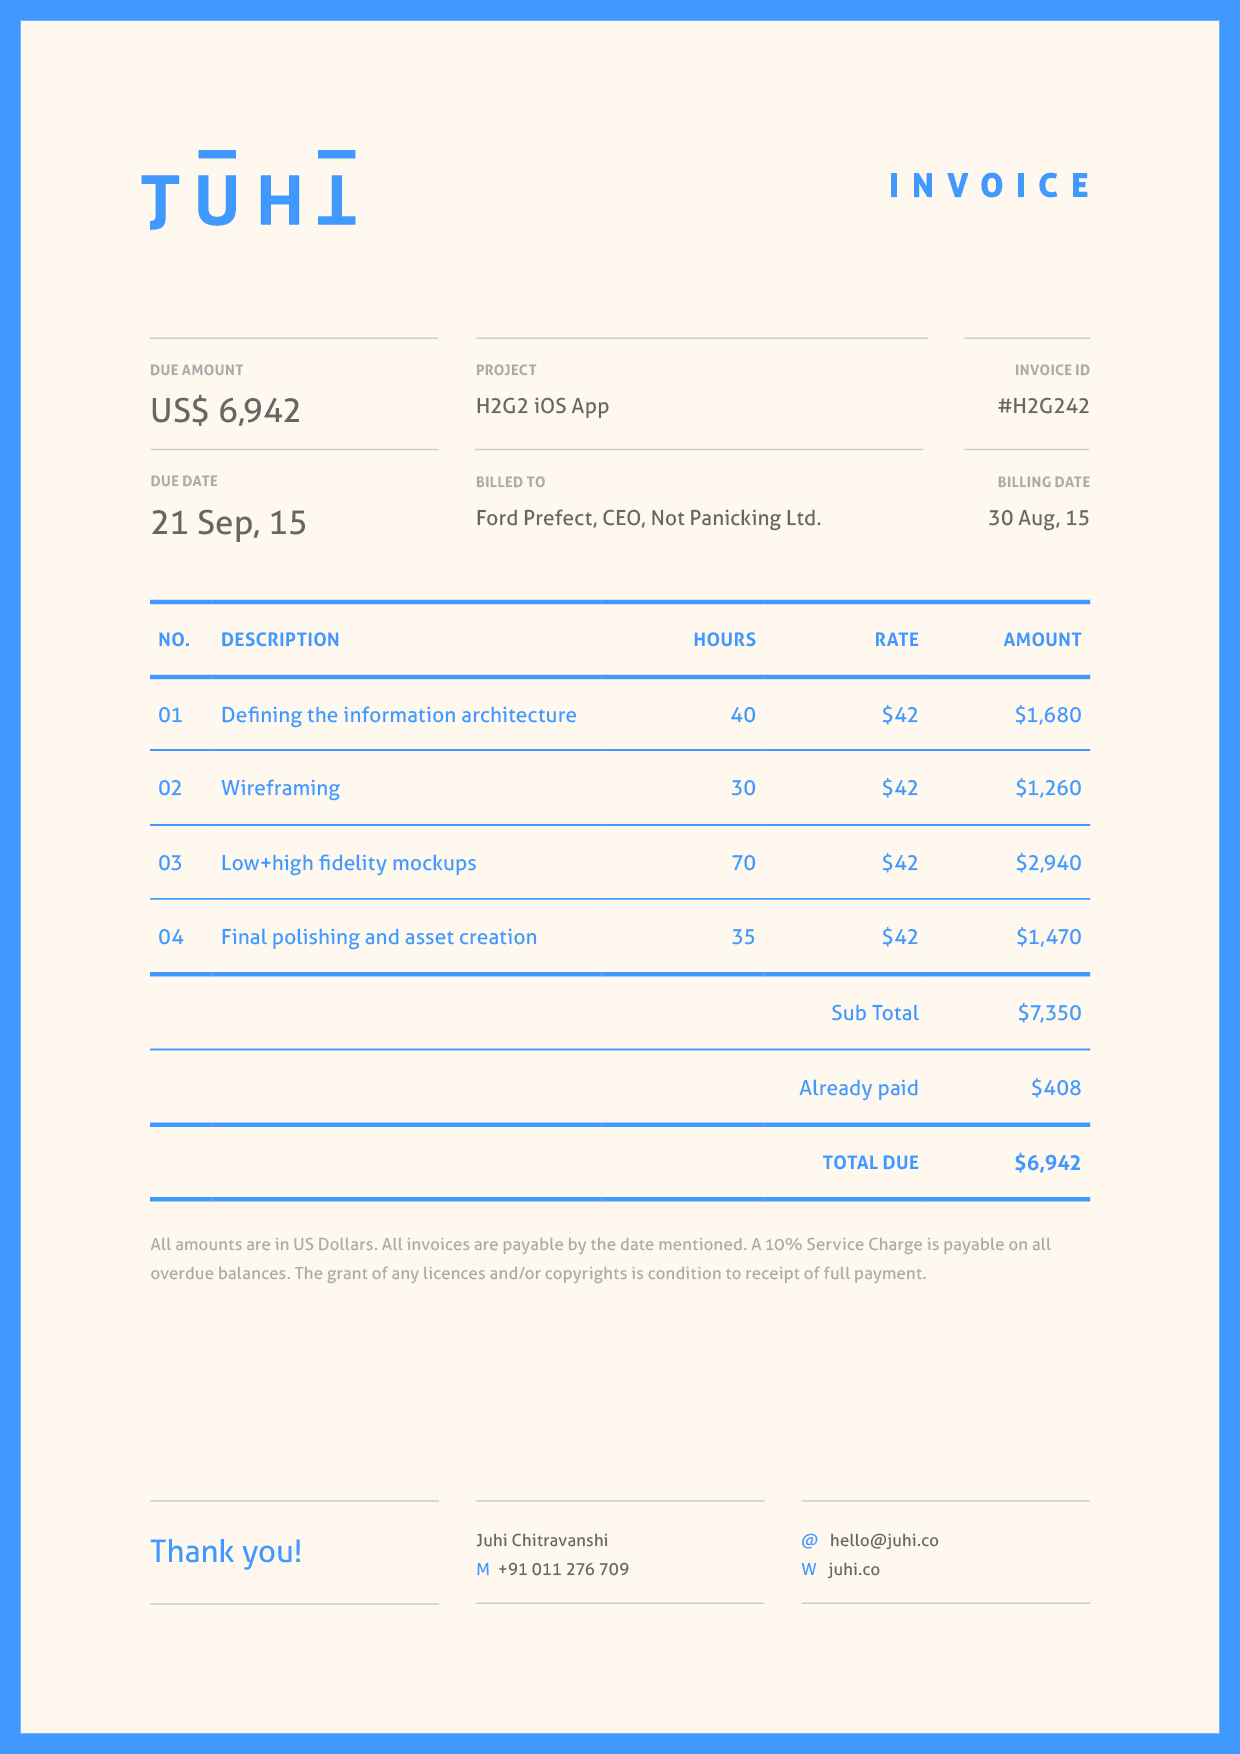 Coachoutletonlineplusus  Pleasant Dont Hold Back On Your Invoice  Inspiring Designs  With Goodlooking Invoice By Juhi Chitravanshi Follow With Delectable How Do I Write An Invoice Also Standard Invoice Terms And Conditions In Addition Printable Blank Invoice Forms And Invoice Templates For Free As Well As Invoice Sample Download Additionally Best Invoice Software Mac From Inspirationfeedcom With Coachoutletonlineplusus  Goodlooking Dont Hold Back On Your Invoice  Inspiring Designs  With Delectable Invoice By Juhi Chitravanshi Follow And Pleasant How Do I Write An Invoice Also Standard Invoice Terms And Conditions In Addition Printable Blank Invoice Forms From Inspirationfeedcom